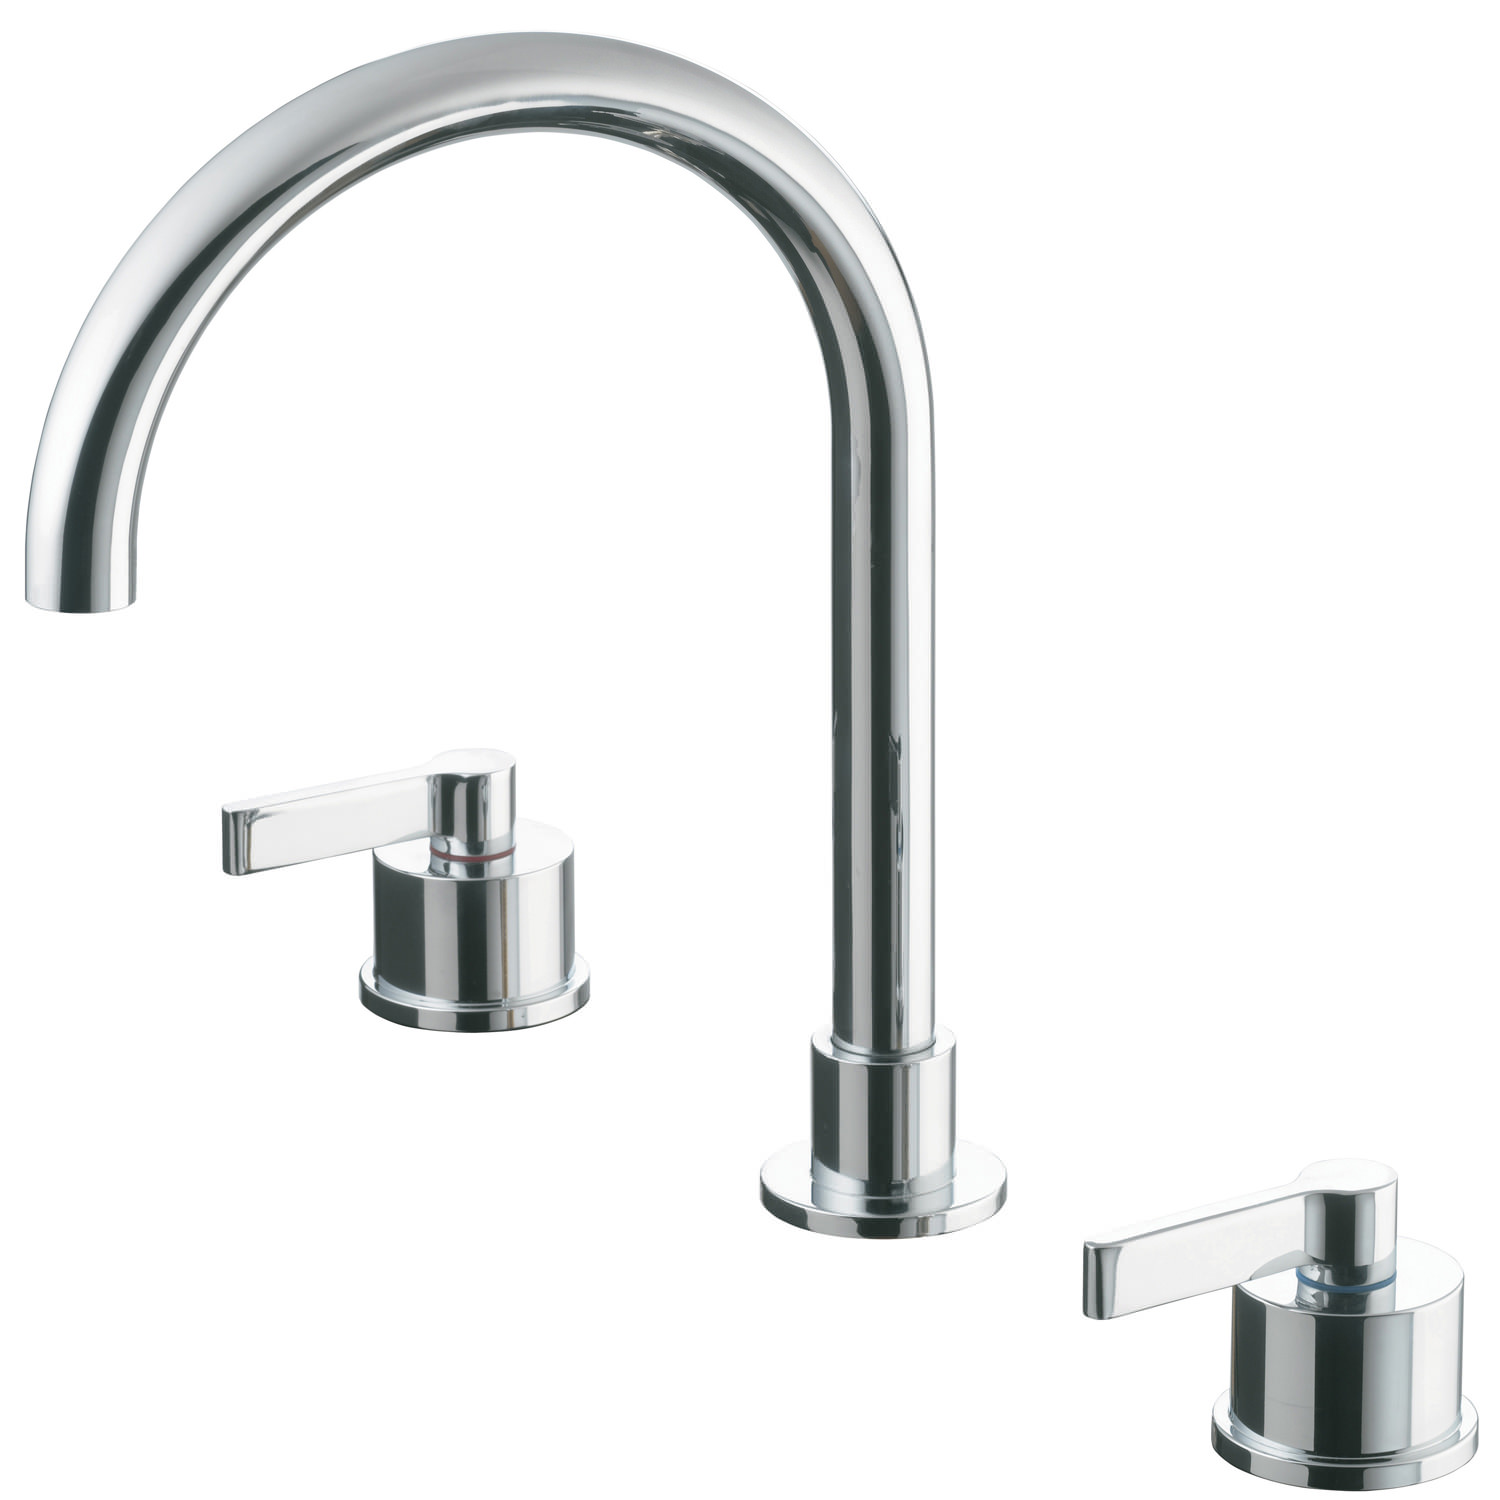 Ideal Standard Silver 3 Hole Basin Mixer Tap Without Waste - E0062AA